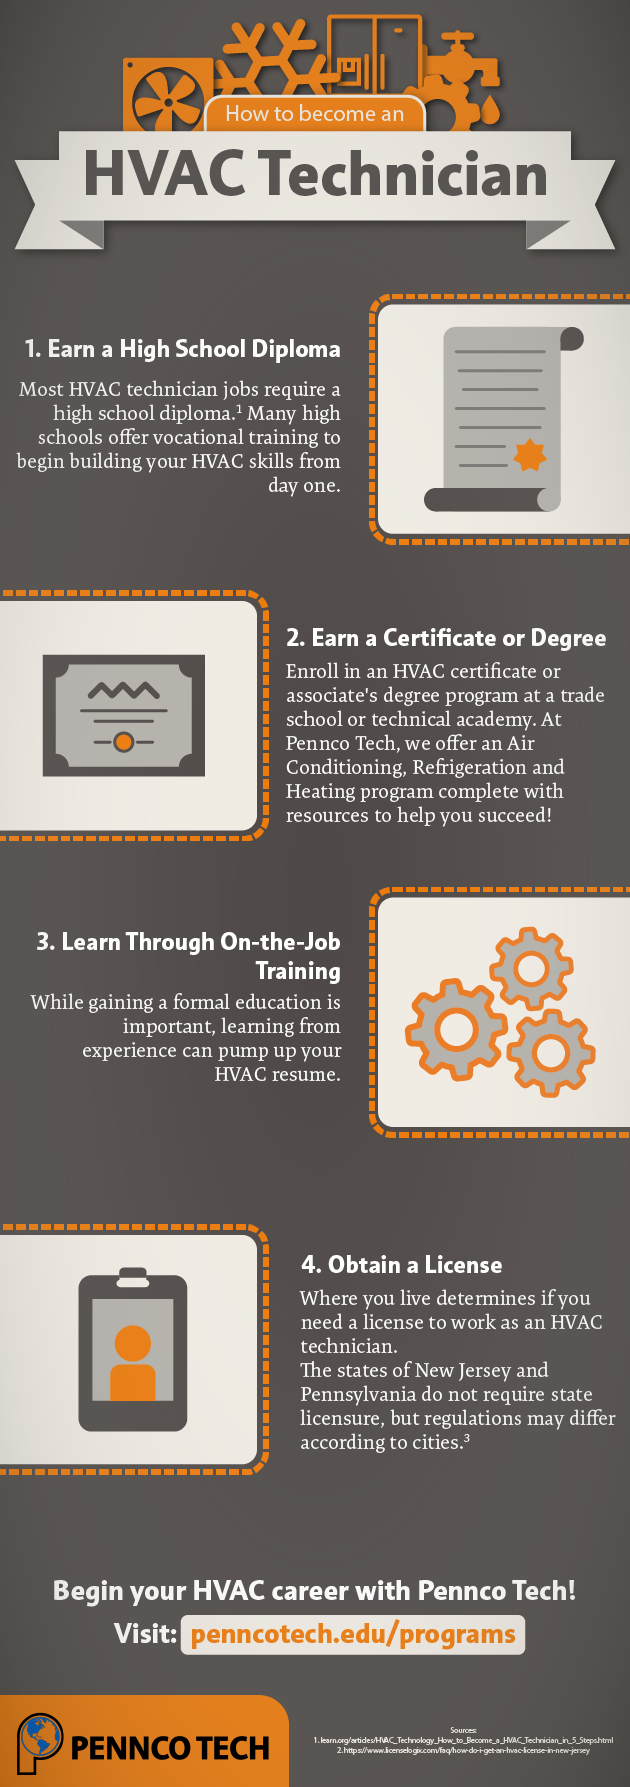 Become an hvac technician with the proper training and become an hvac technician with the proper training and certification here is everything you will xflitez Choice Image